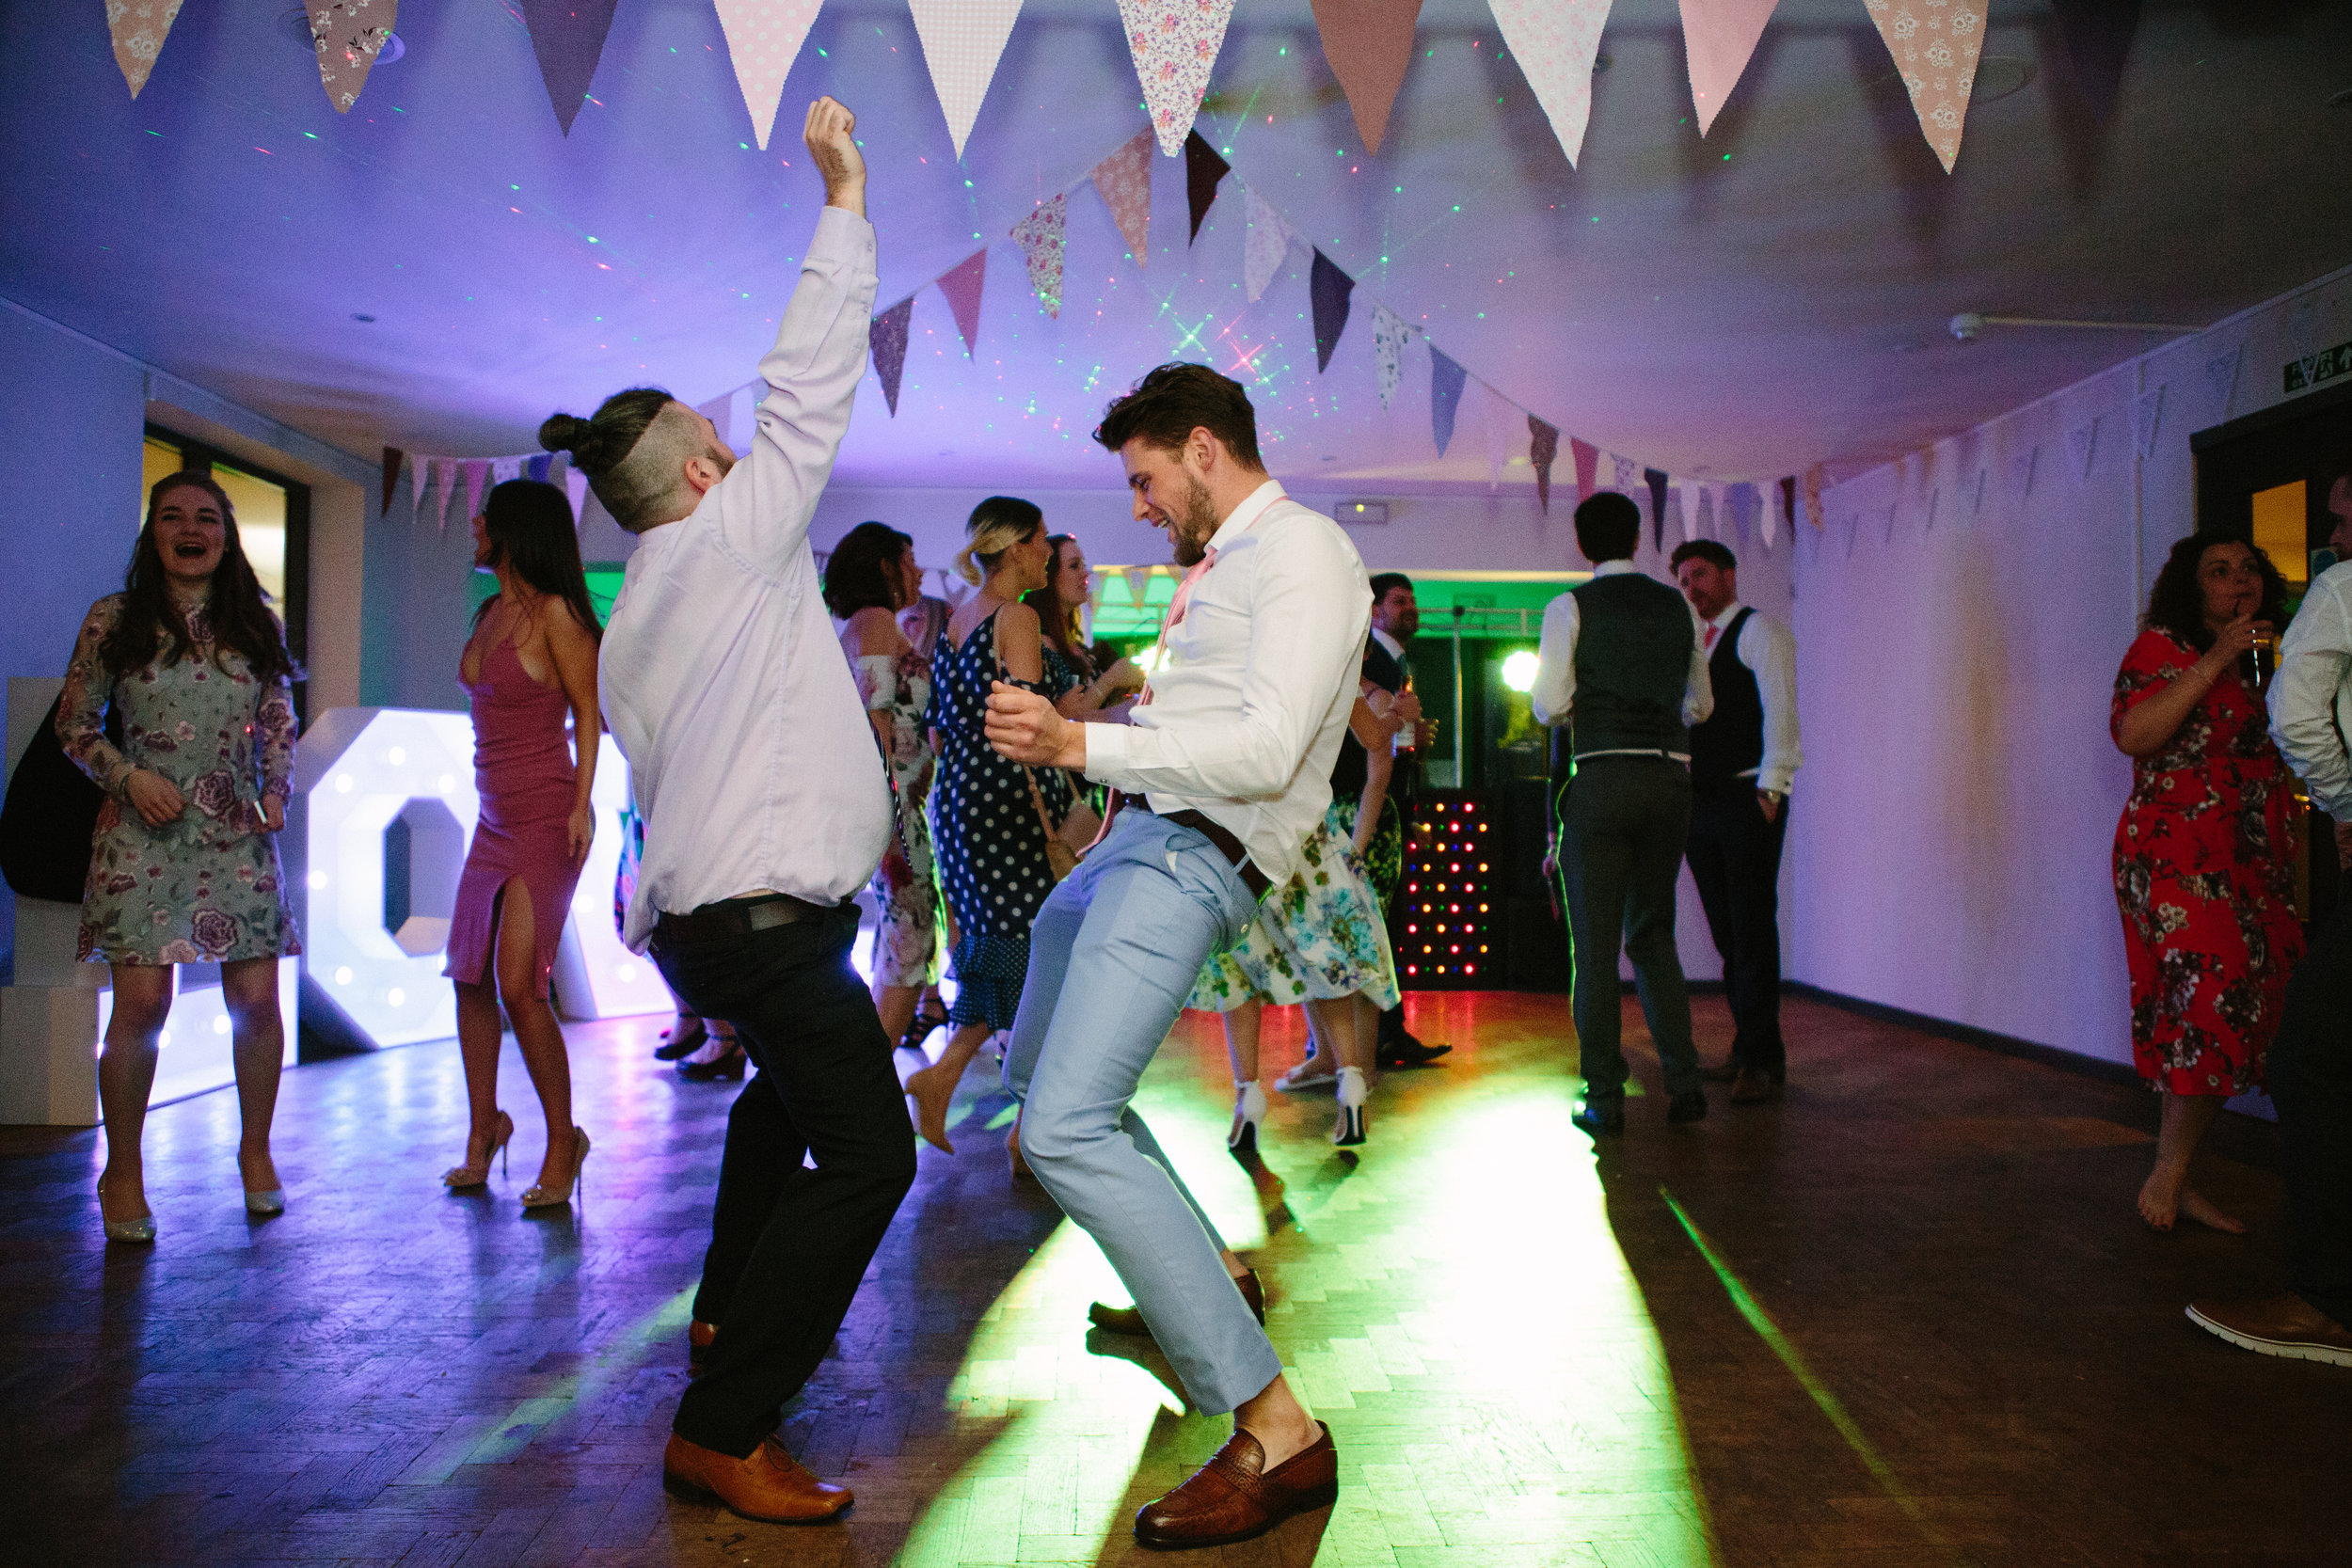 cotswalds-chipping-norton-oxfordshire-london-wedding-photography-brother-dance-52